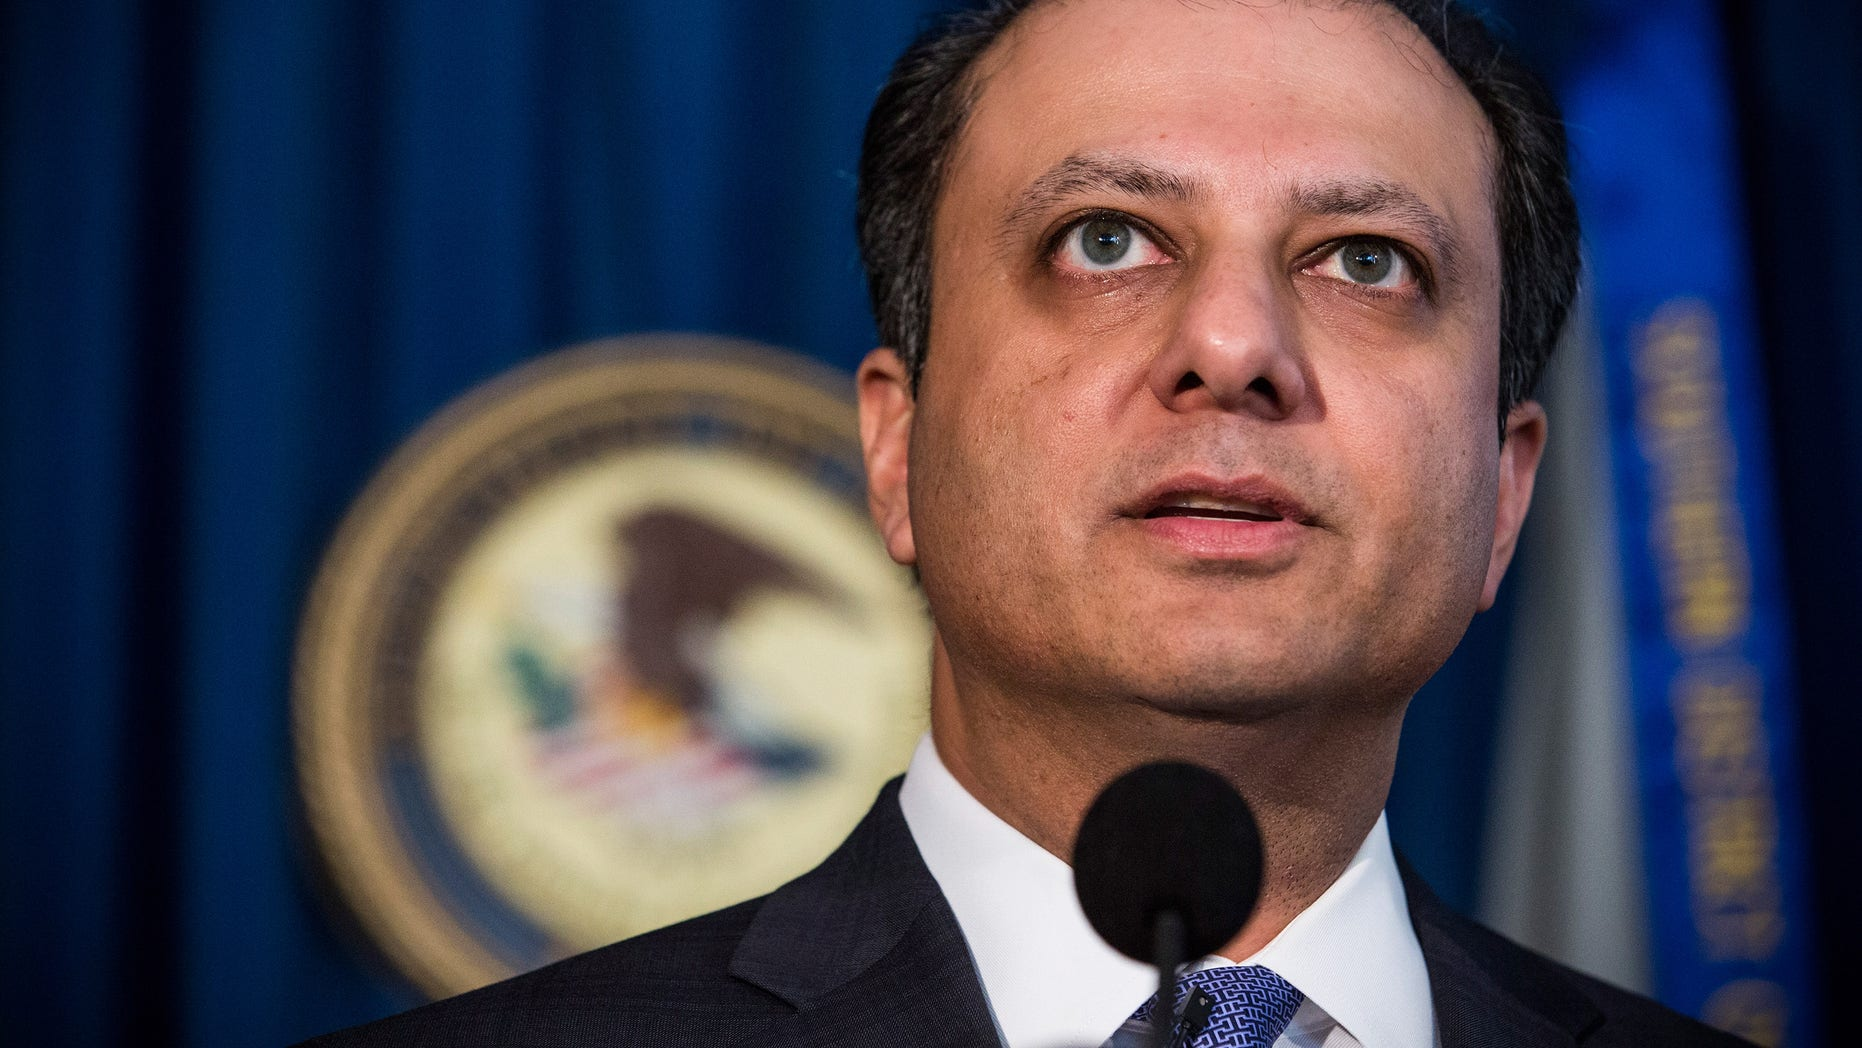 NEW YORK, NY - NOVEMBER 04:  U.S. Attorney for the Southern District of New York, Preet Bharara, speaks at a press conference to announce a proposed resolution to insider trading and civil charges against four S.A.C. Capital Management companies, on November 4, 2013 in New York City.  The S.A.C. will have to pay $900 million in fines.  (Photo by Andrew Burton/Getty Images)